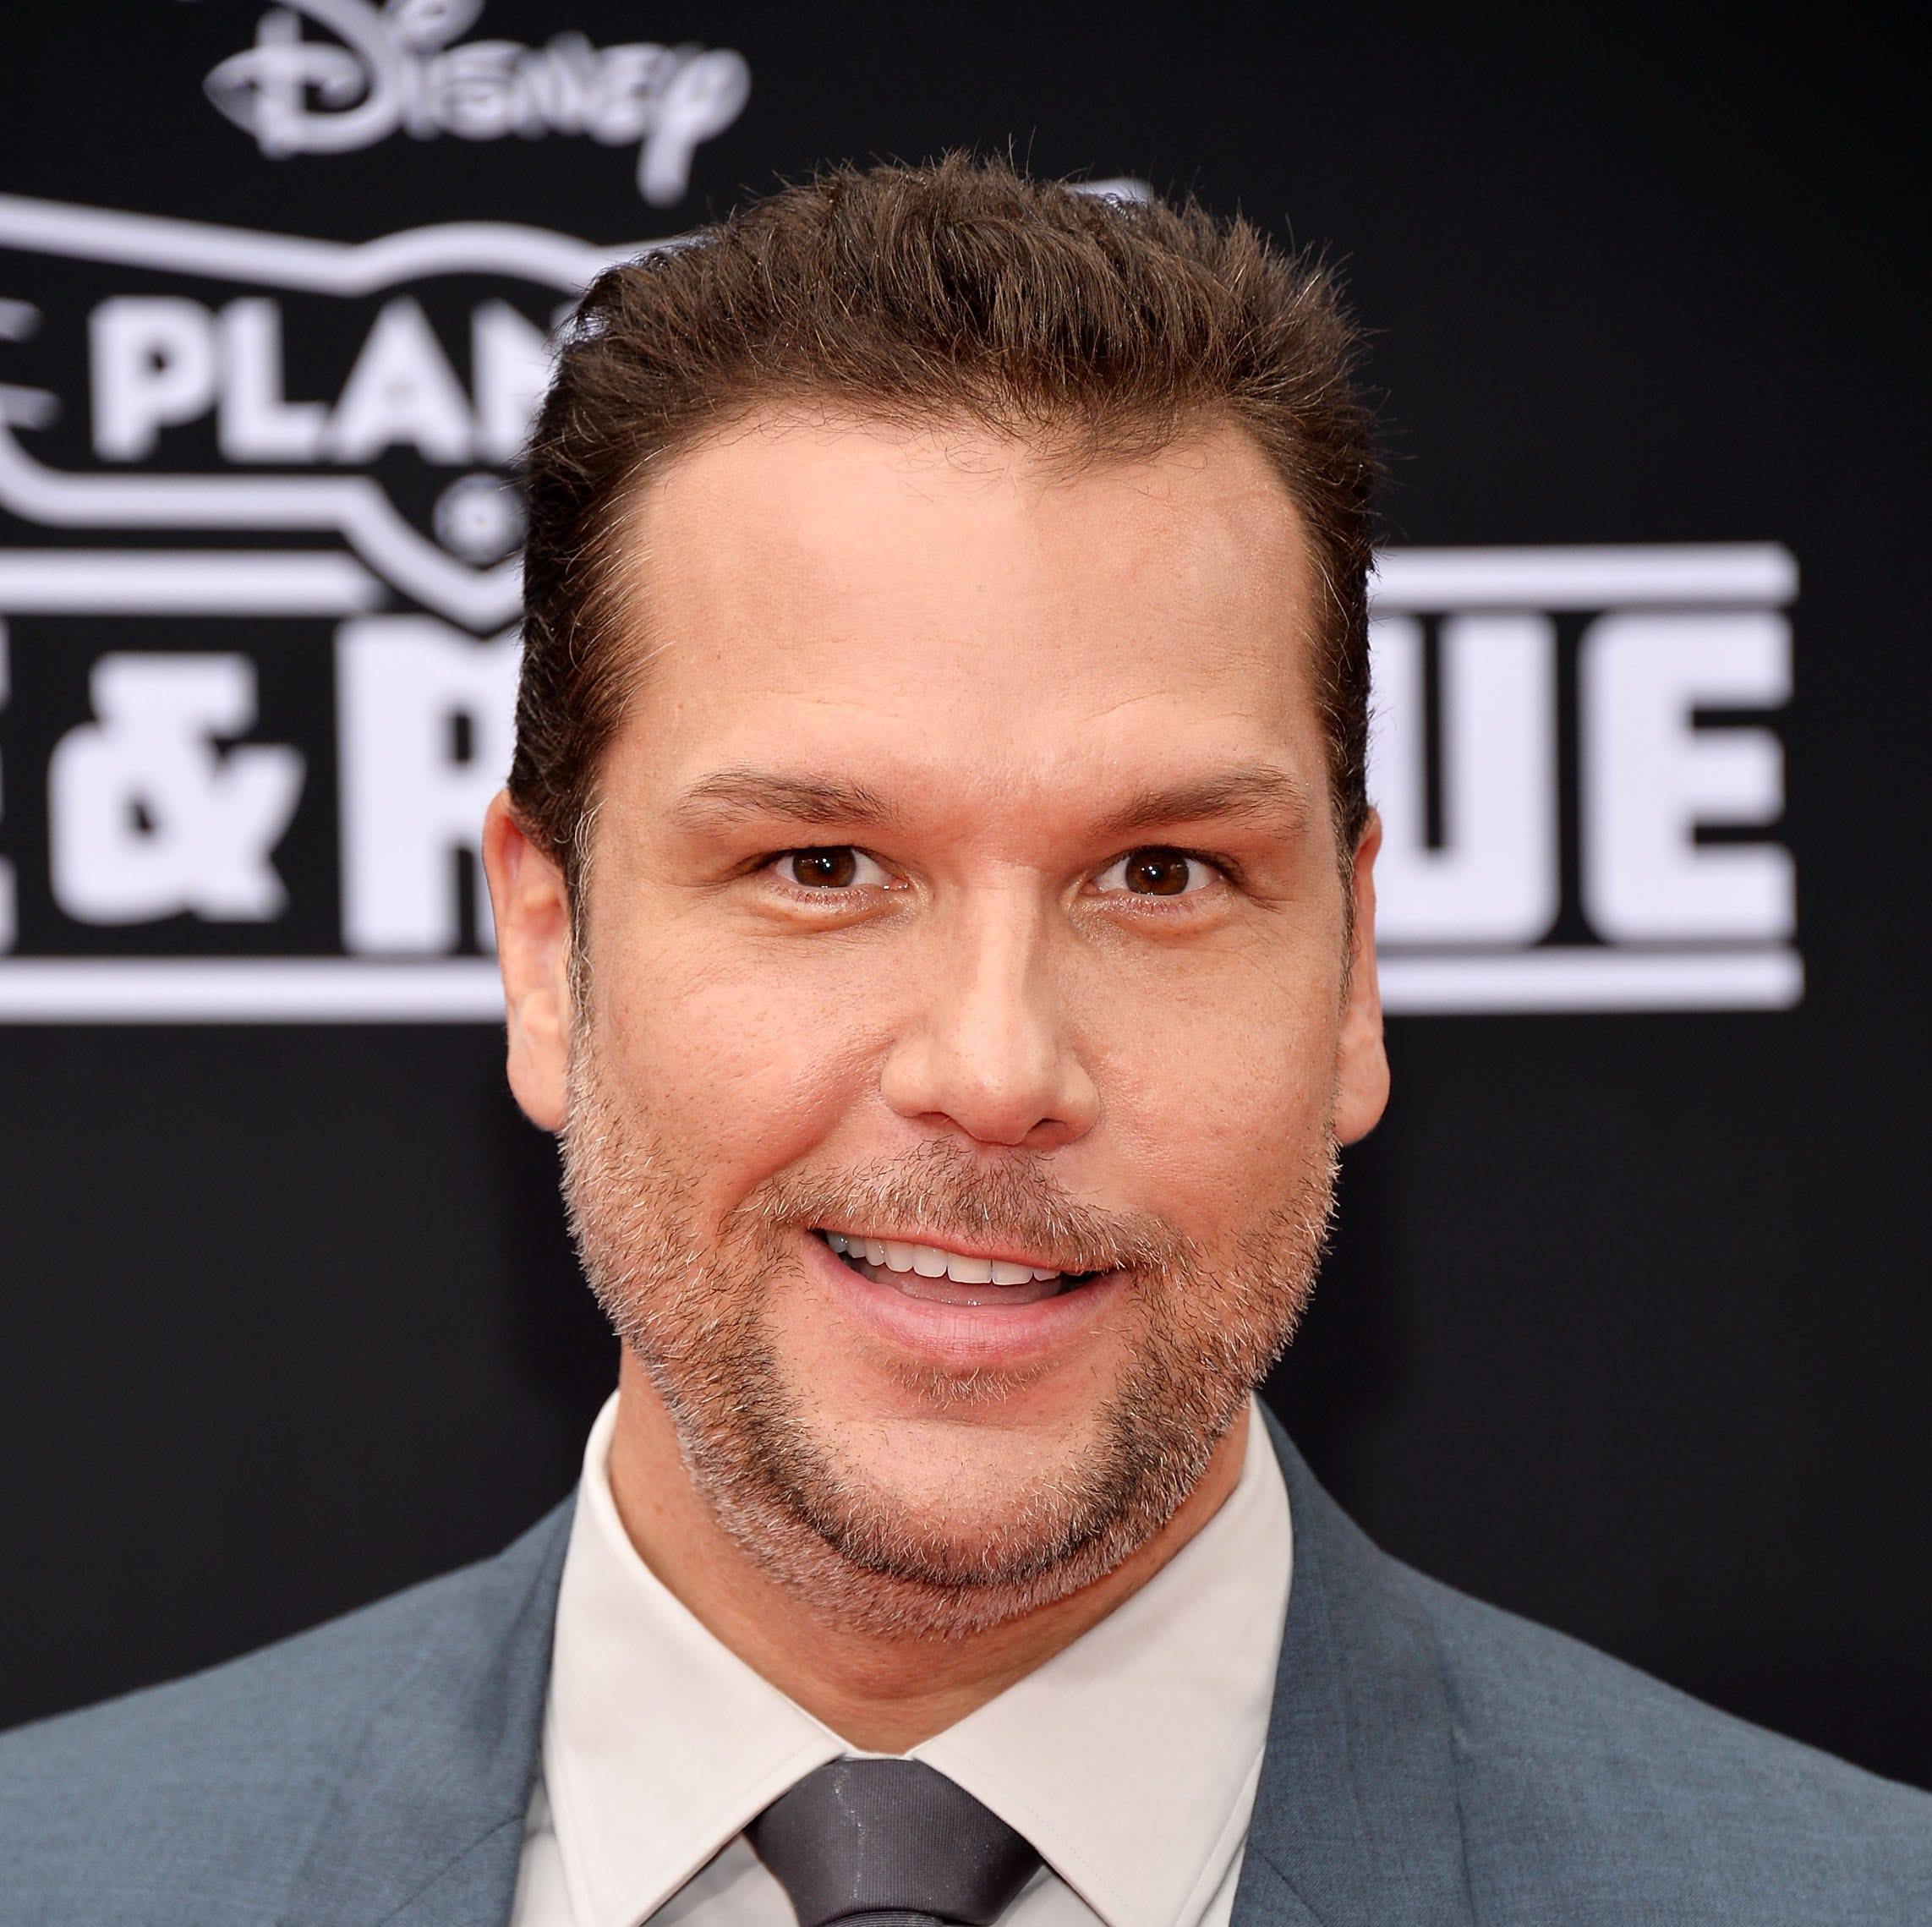 """Actor and comedian Dane Cook arrives at the Los Angeles premiere of Disney's """"Planes: Fire & Rescue"""" on July 15, 2014 in Hollywood."""